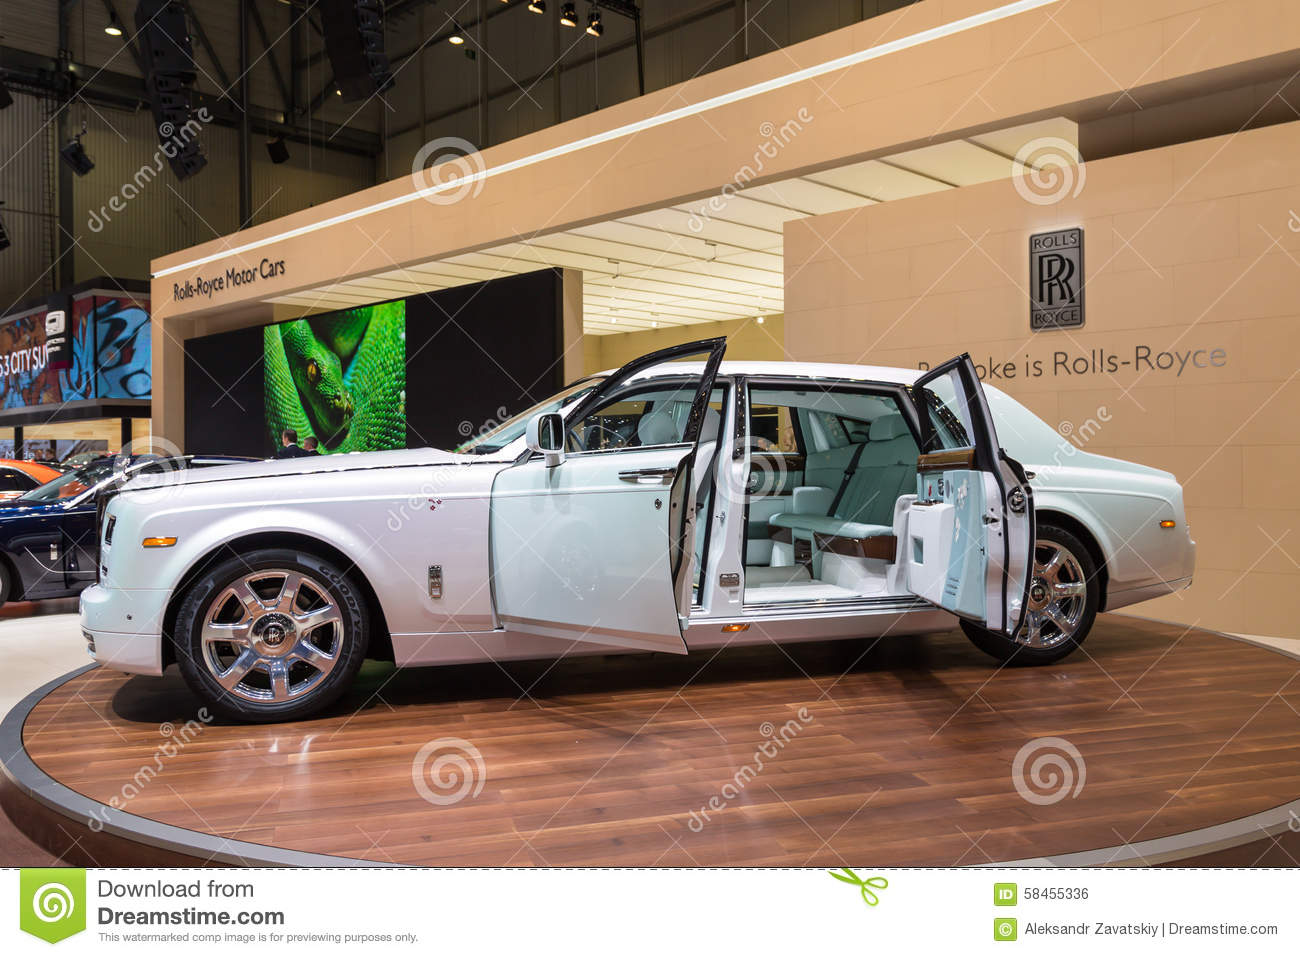 Phantom Serenity 2015 Rolls Royce Phantom Serenity Editorial Photo Image Of Model